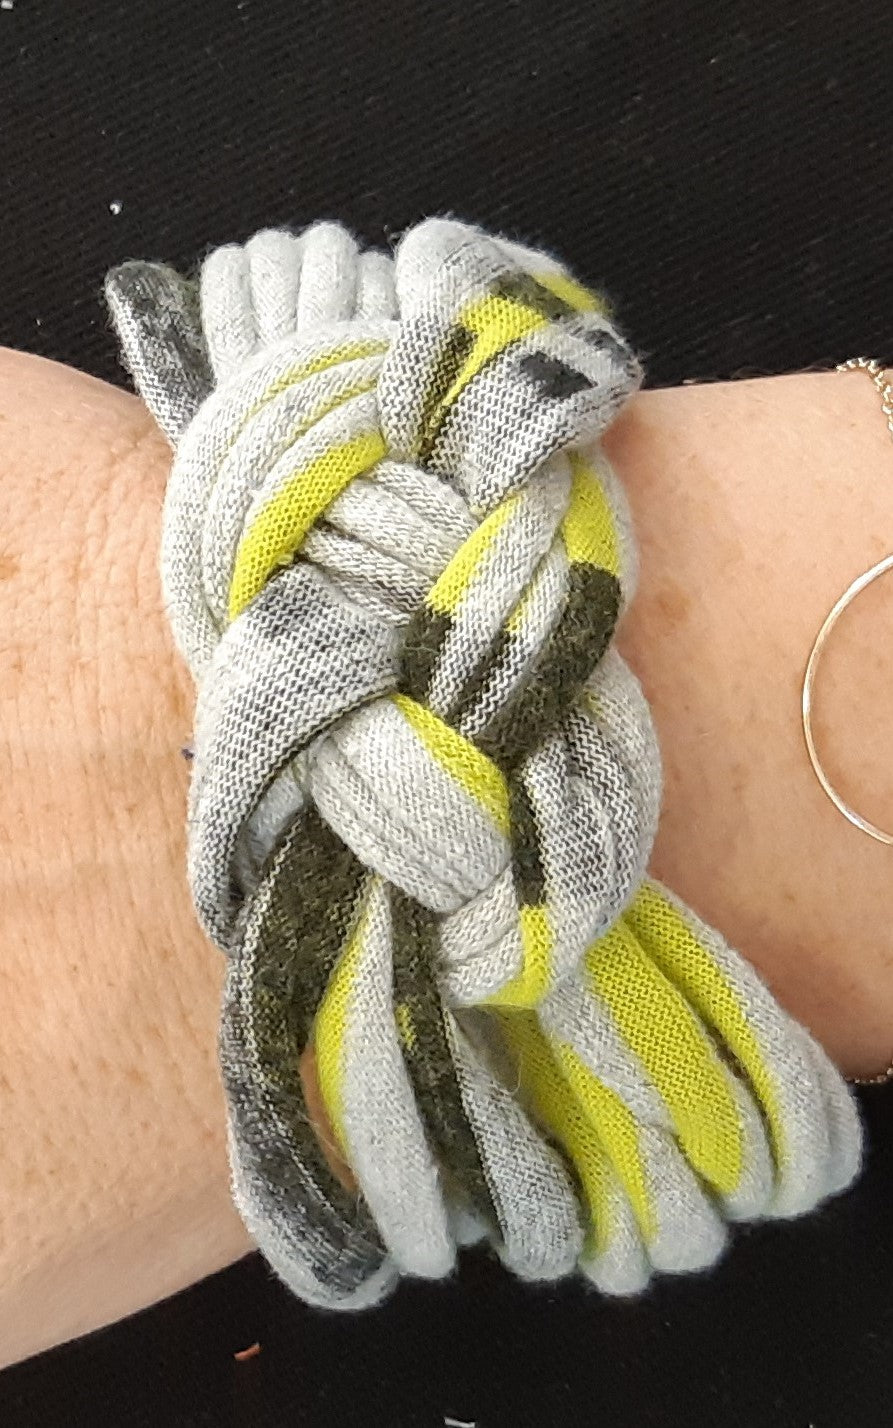 atelier diy upcycling textile bracelet collier tshirt recyclage renaissance creation